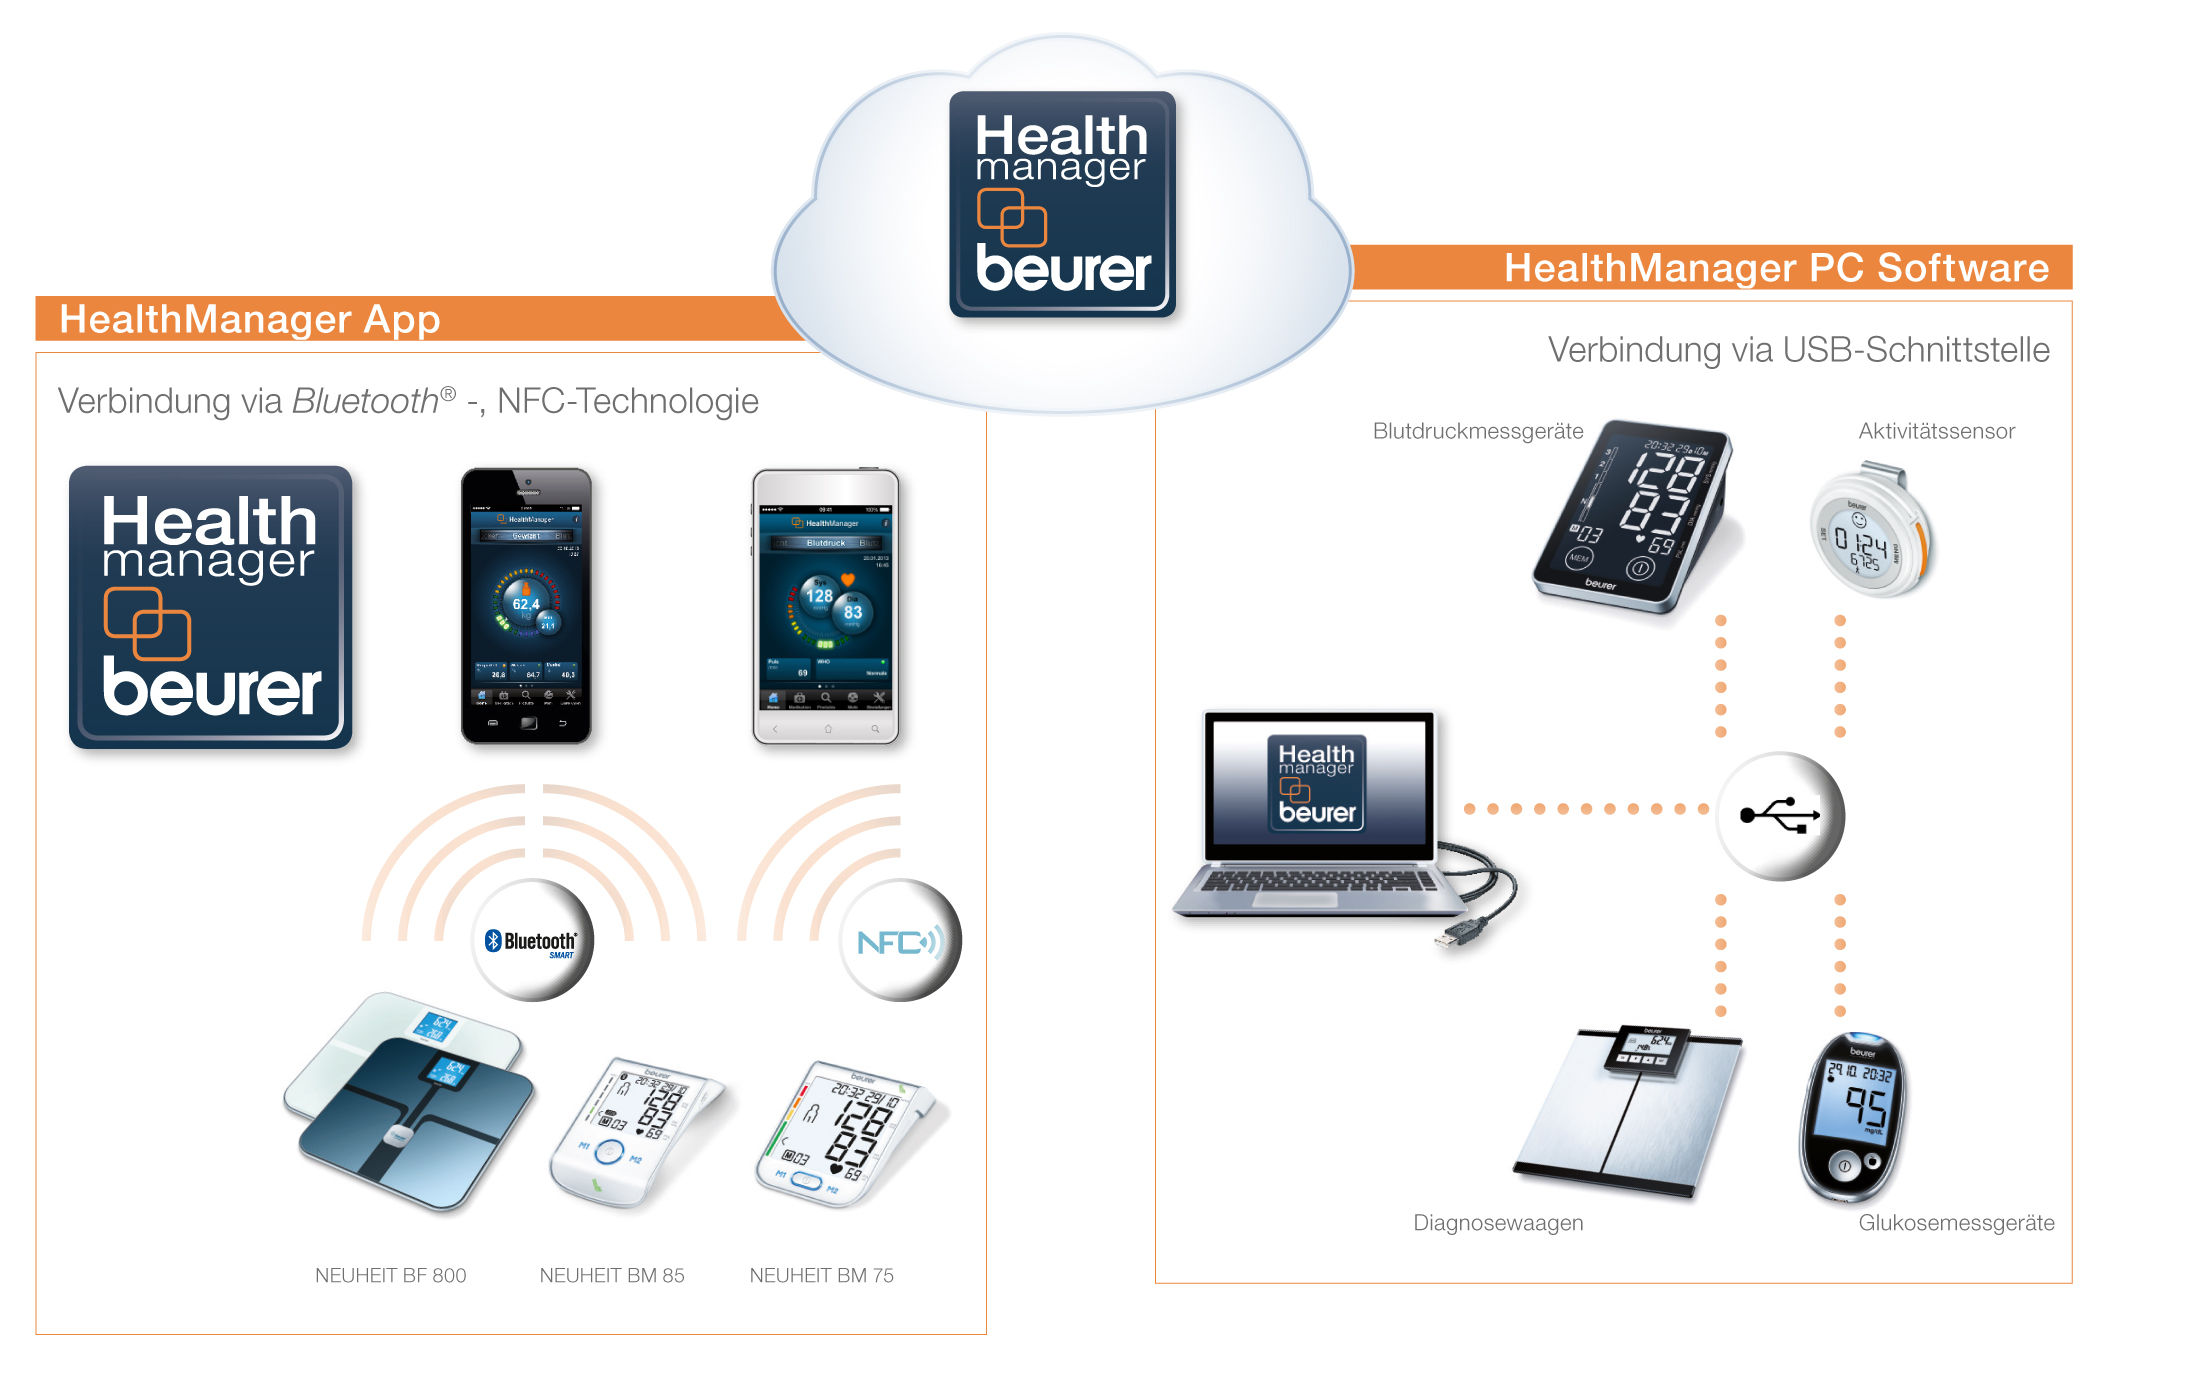 HealthManager-Cloud.jpg